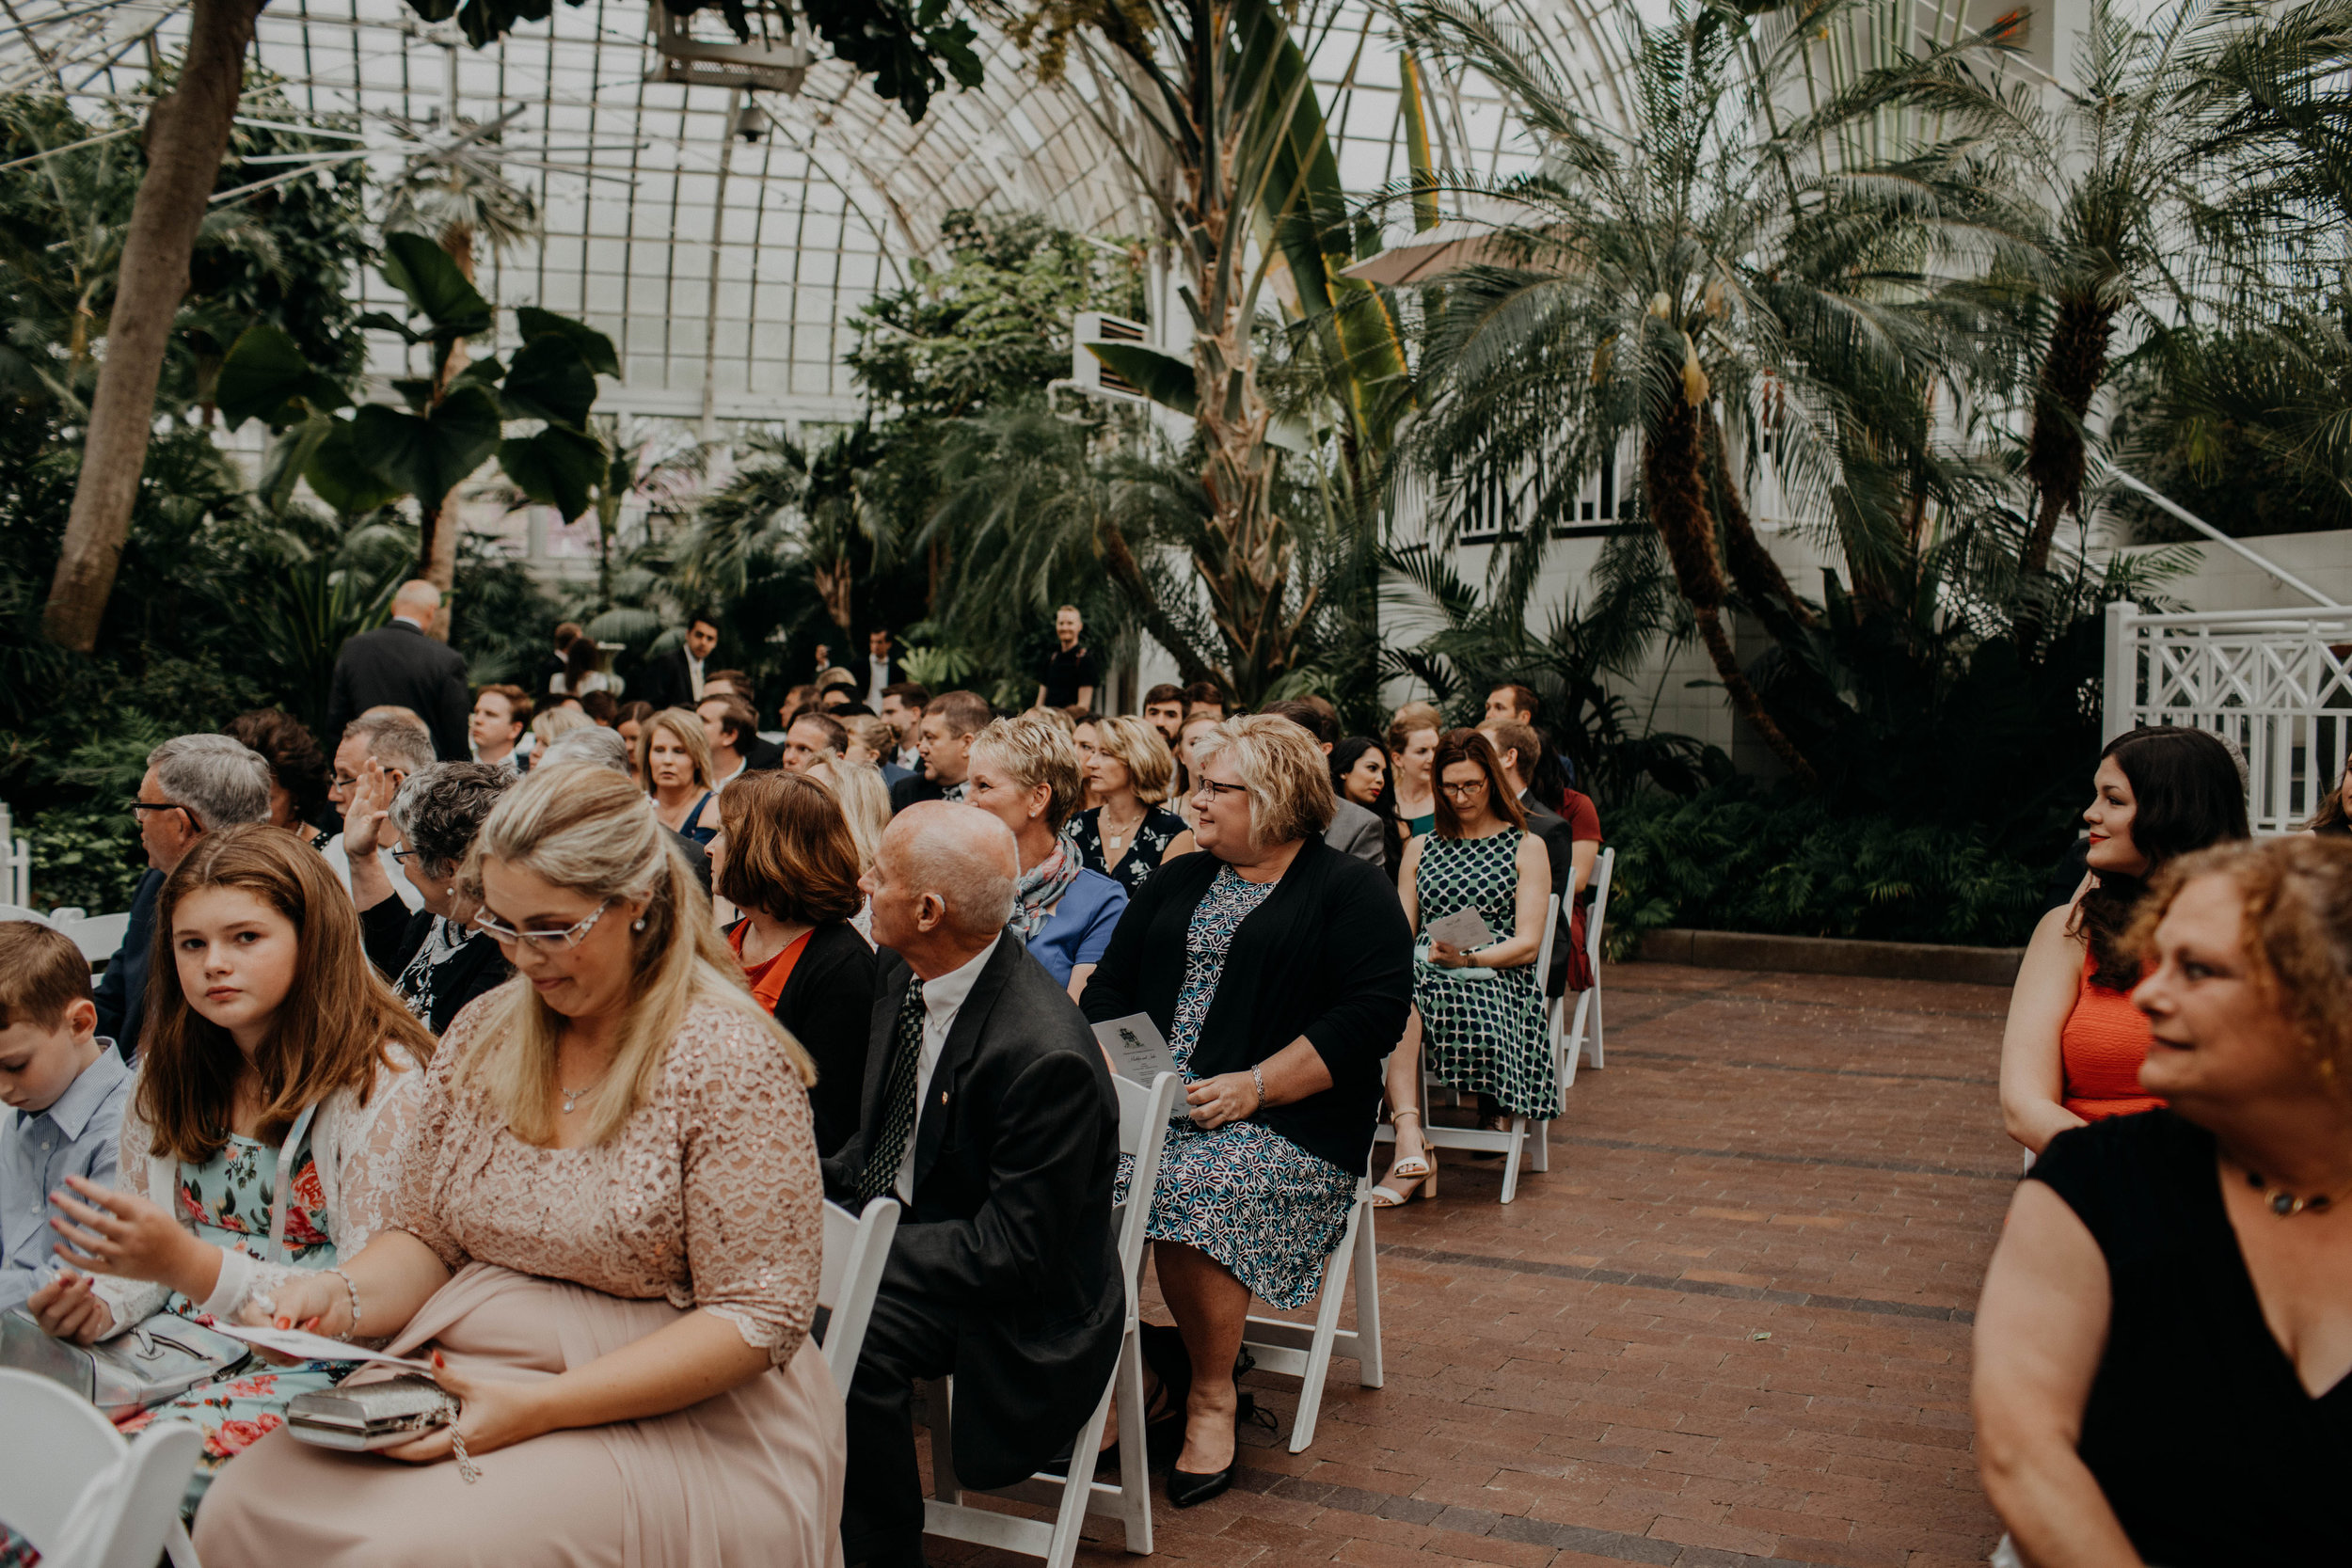 franklin park conservatory wedding columbus ohio wedding photographer grace e jones photography249.jpg